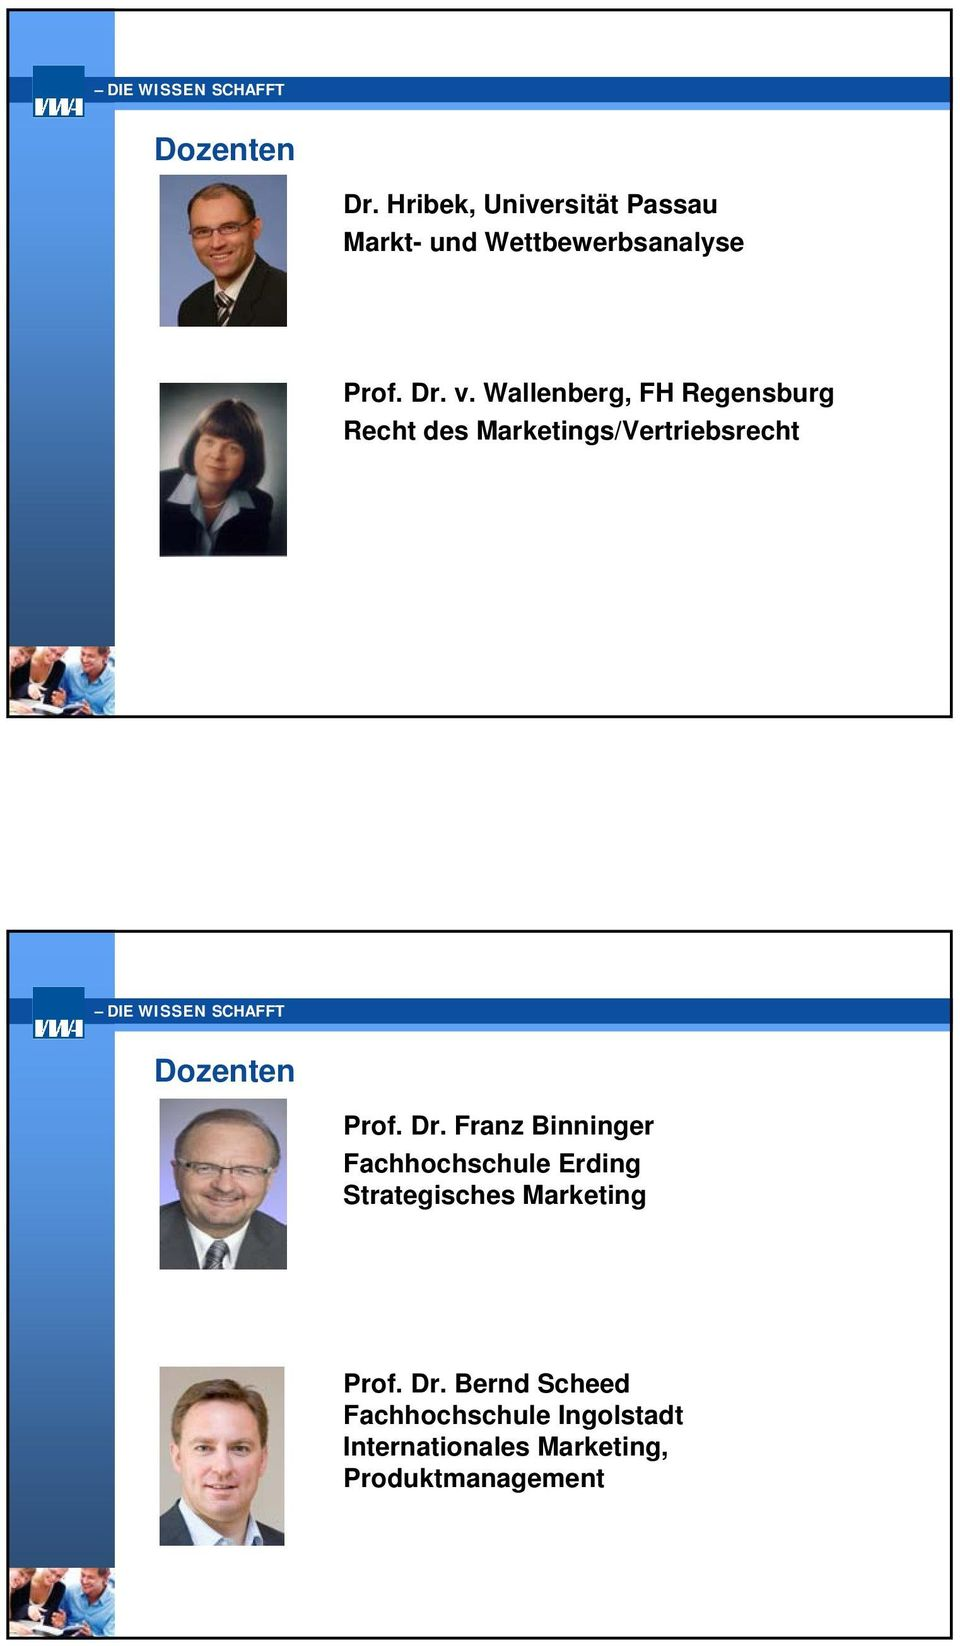 Franz Binninger Fachhochschule Erding Strategisches Marketing Prof. Dr.